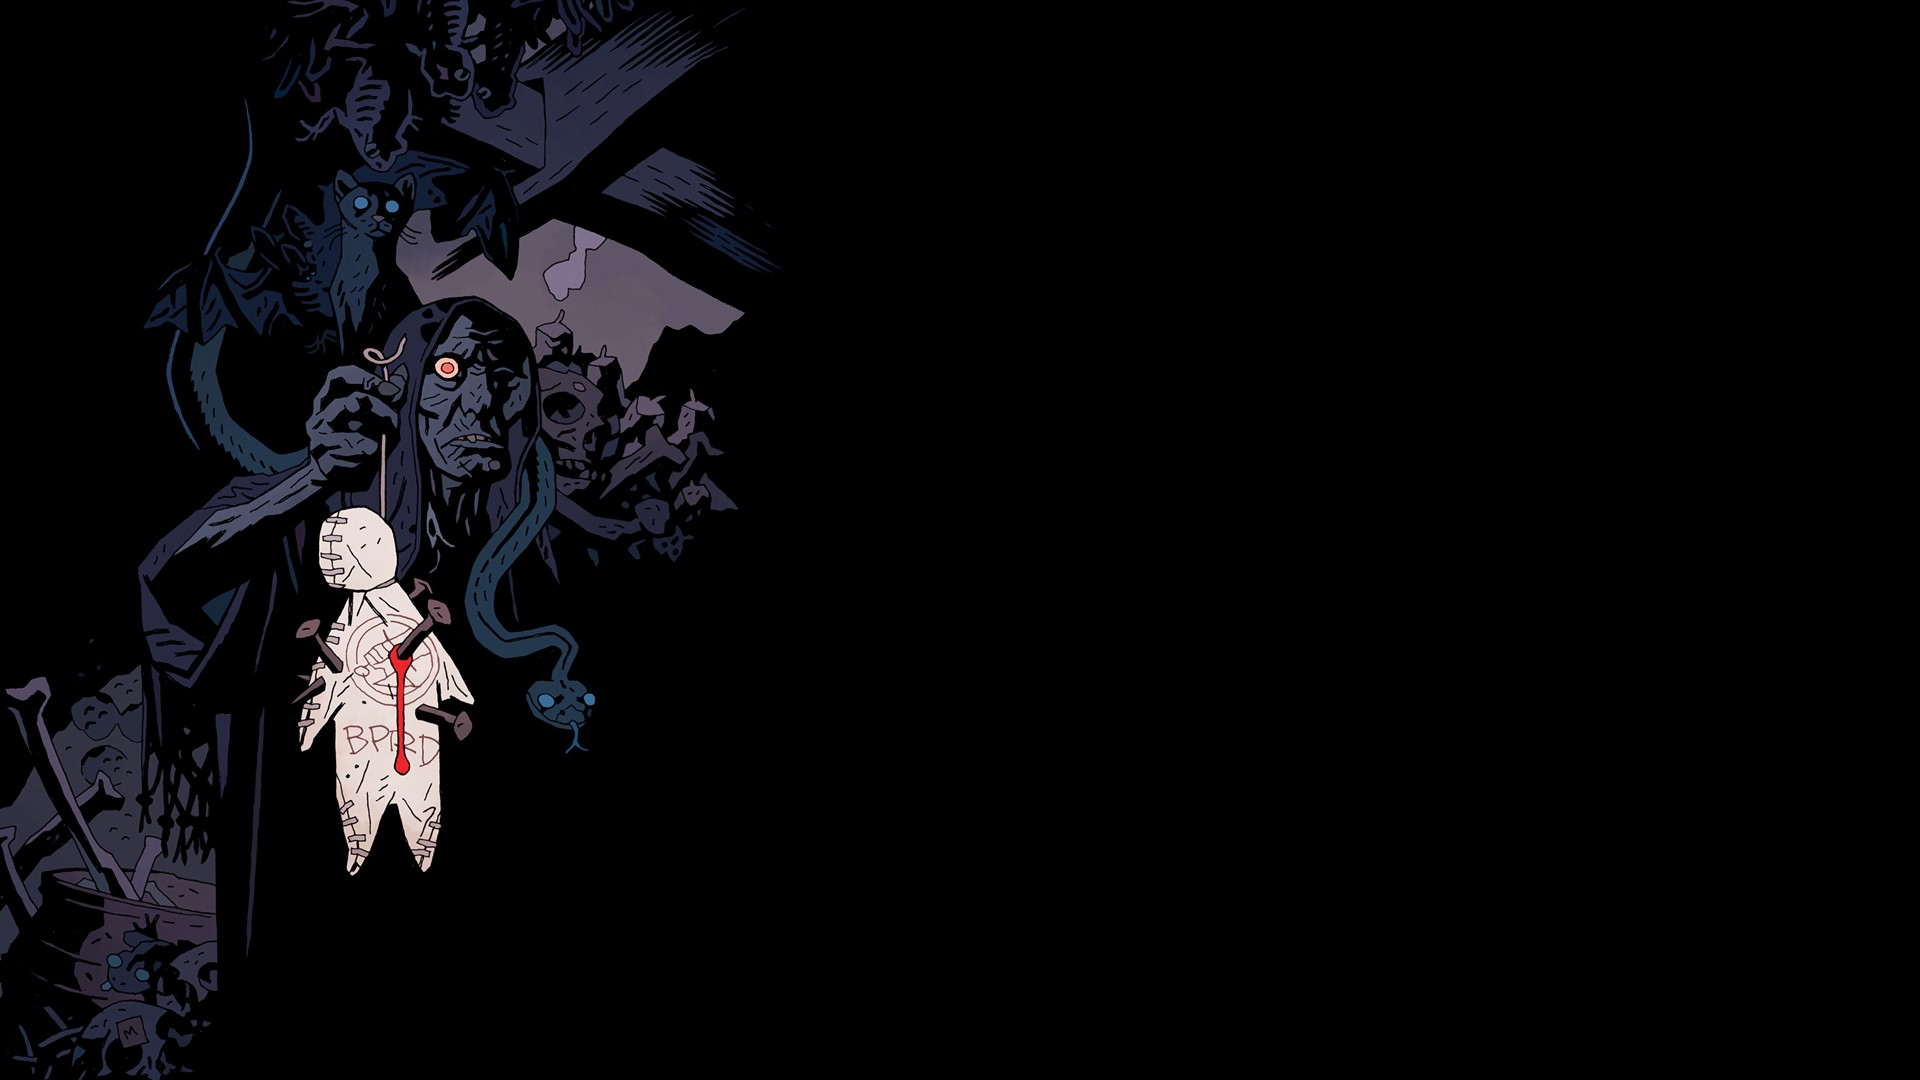 Friday The 13th Iphone Wallpaper Hellboy Full Hd Wallpaper And Background Image 1920x1080